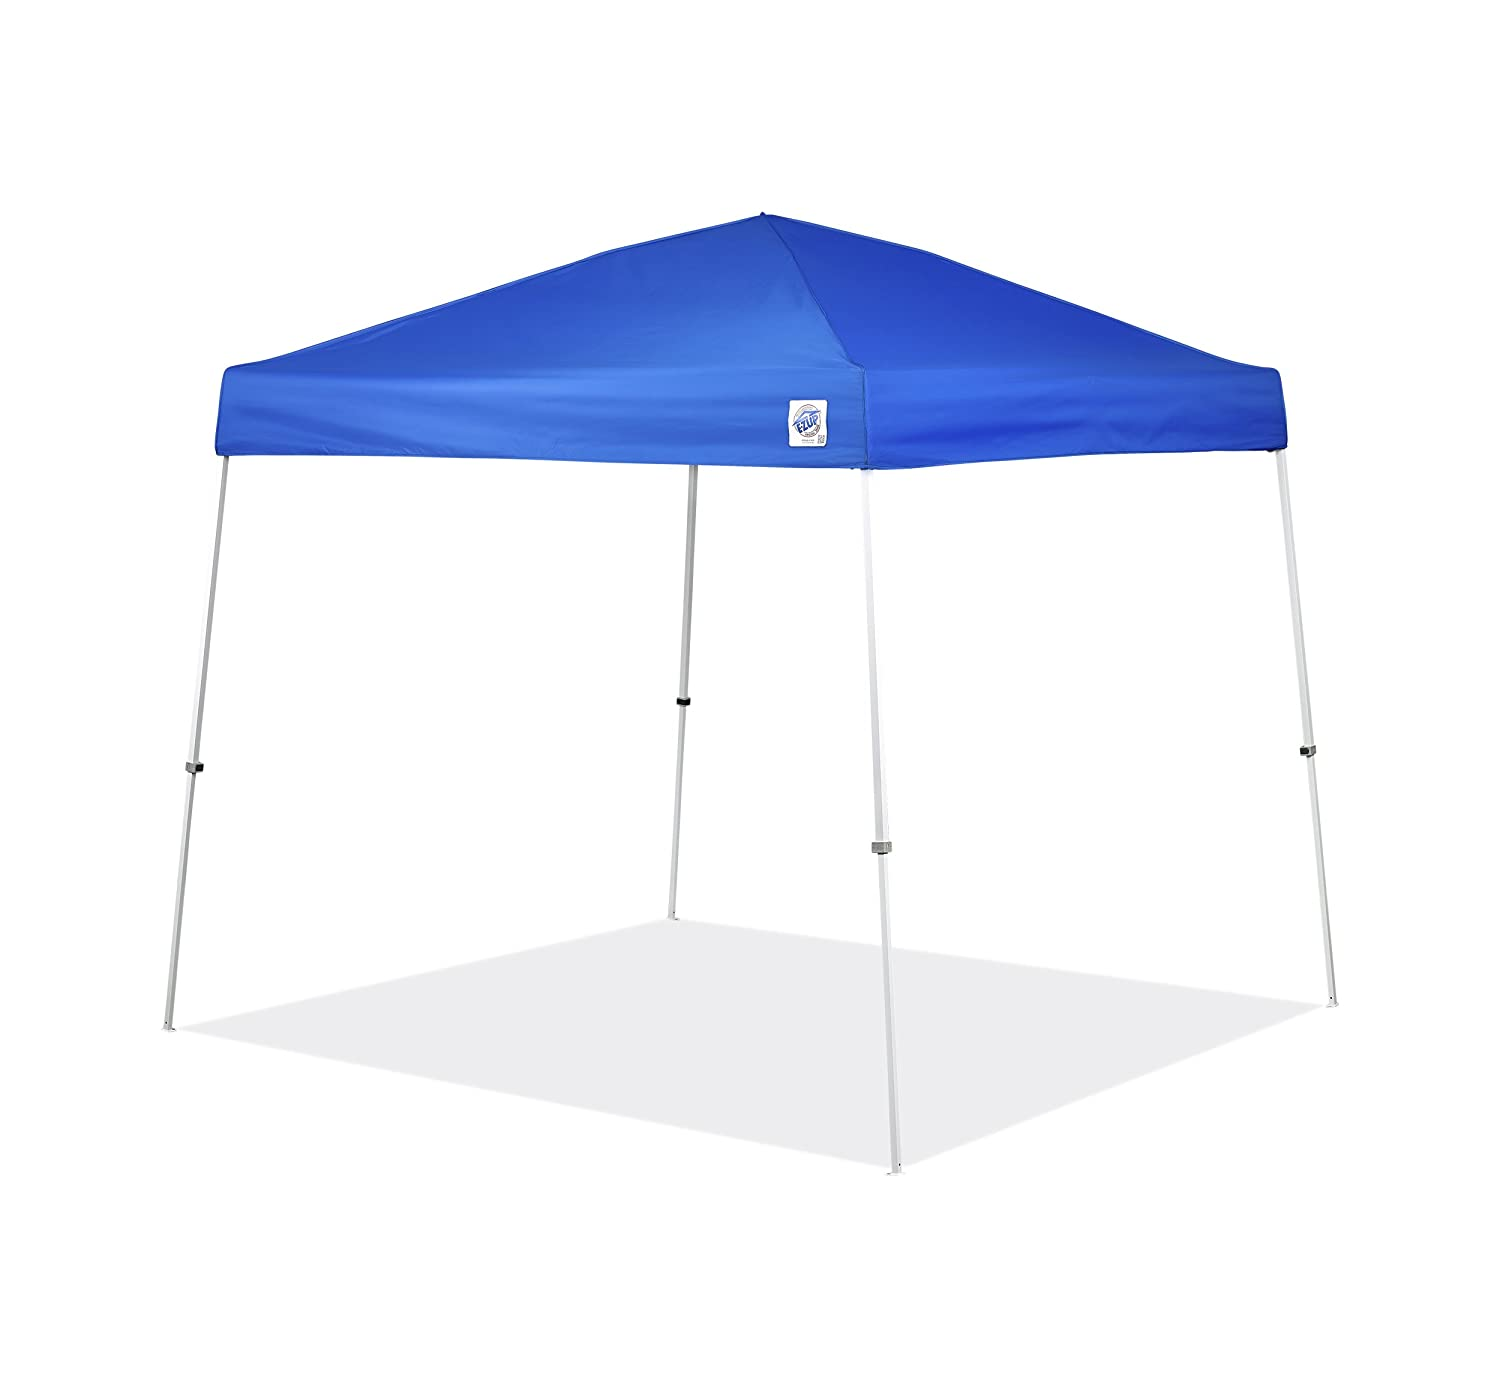 Amazon.com  E-Z UP SR9104BL Sierra II 10 by 10-Feet Canopy Blue  Outdoor Canopies  Garden u0026 Outdoor  sc 1 st  Amazon.com & Amazon.com : E-Z UP SR9104BL Sierra II 10 by 10-Feet Canopy Blue ...